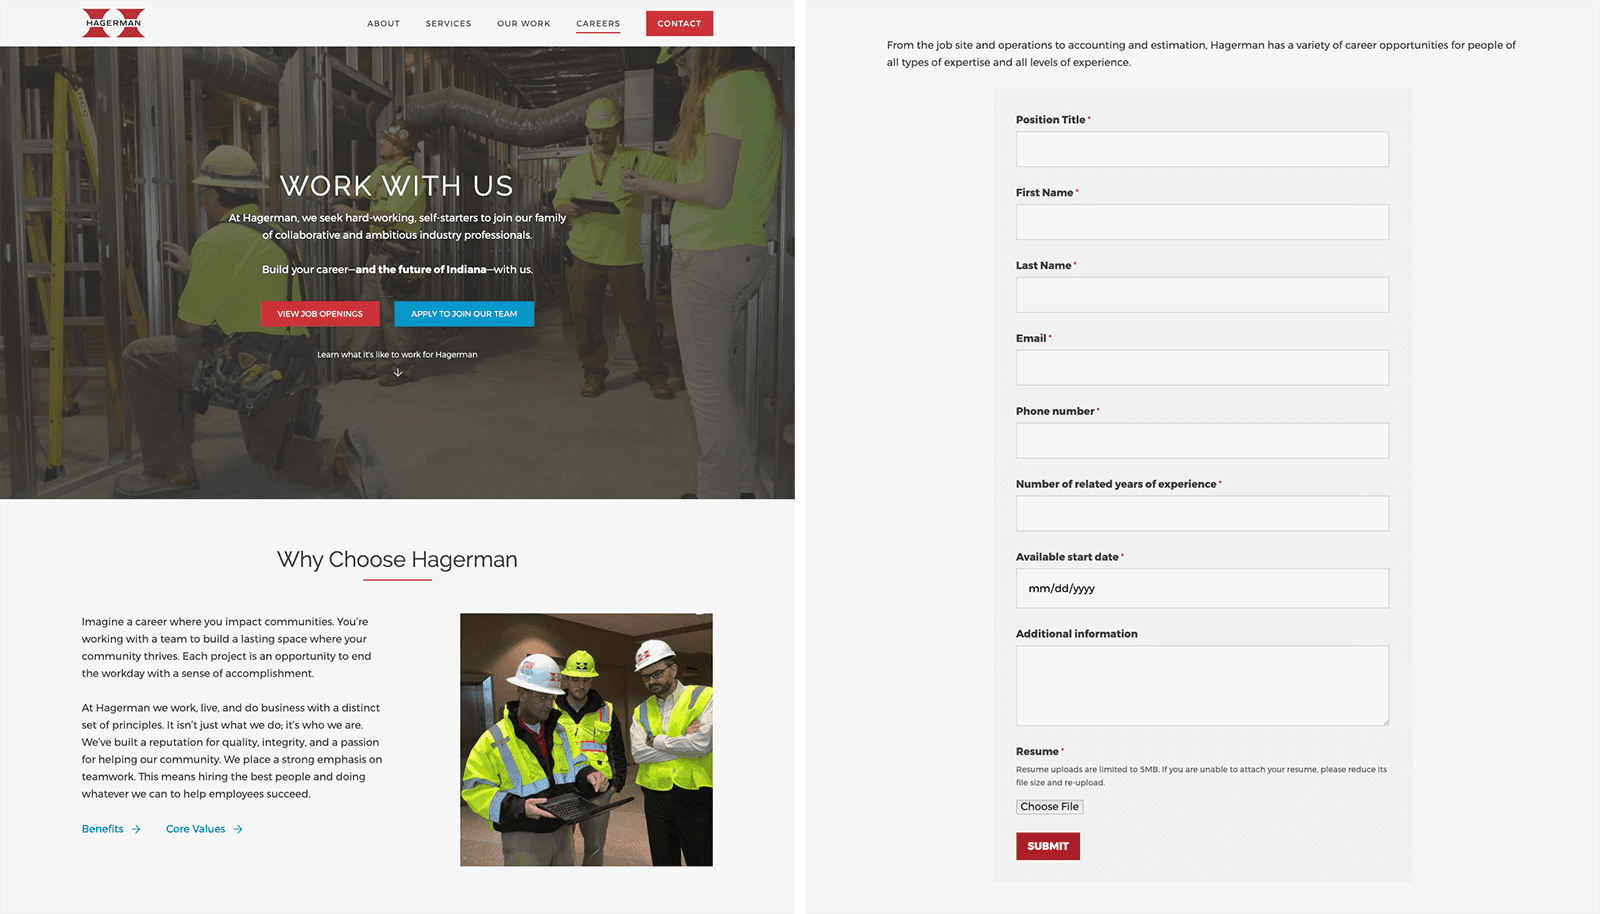 The Hagerman Group's careers website